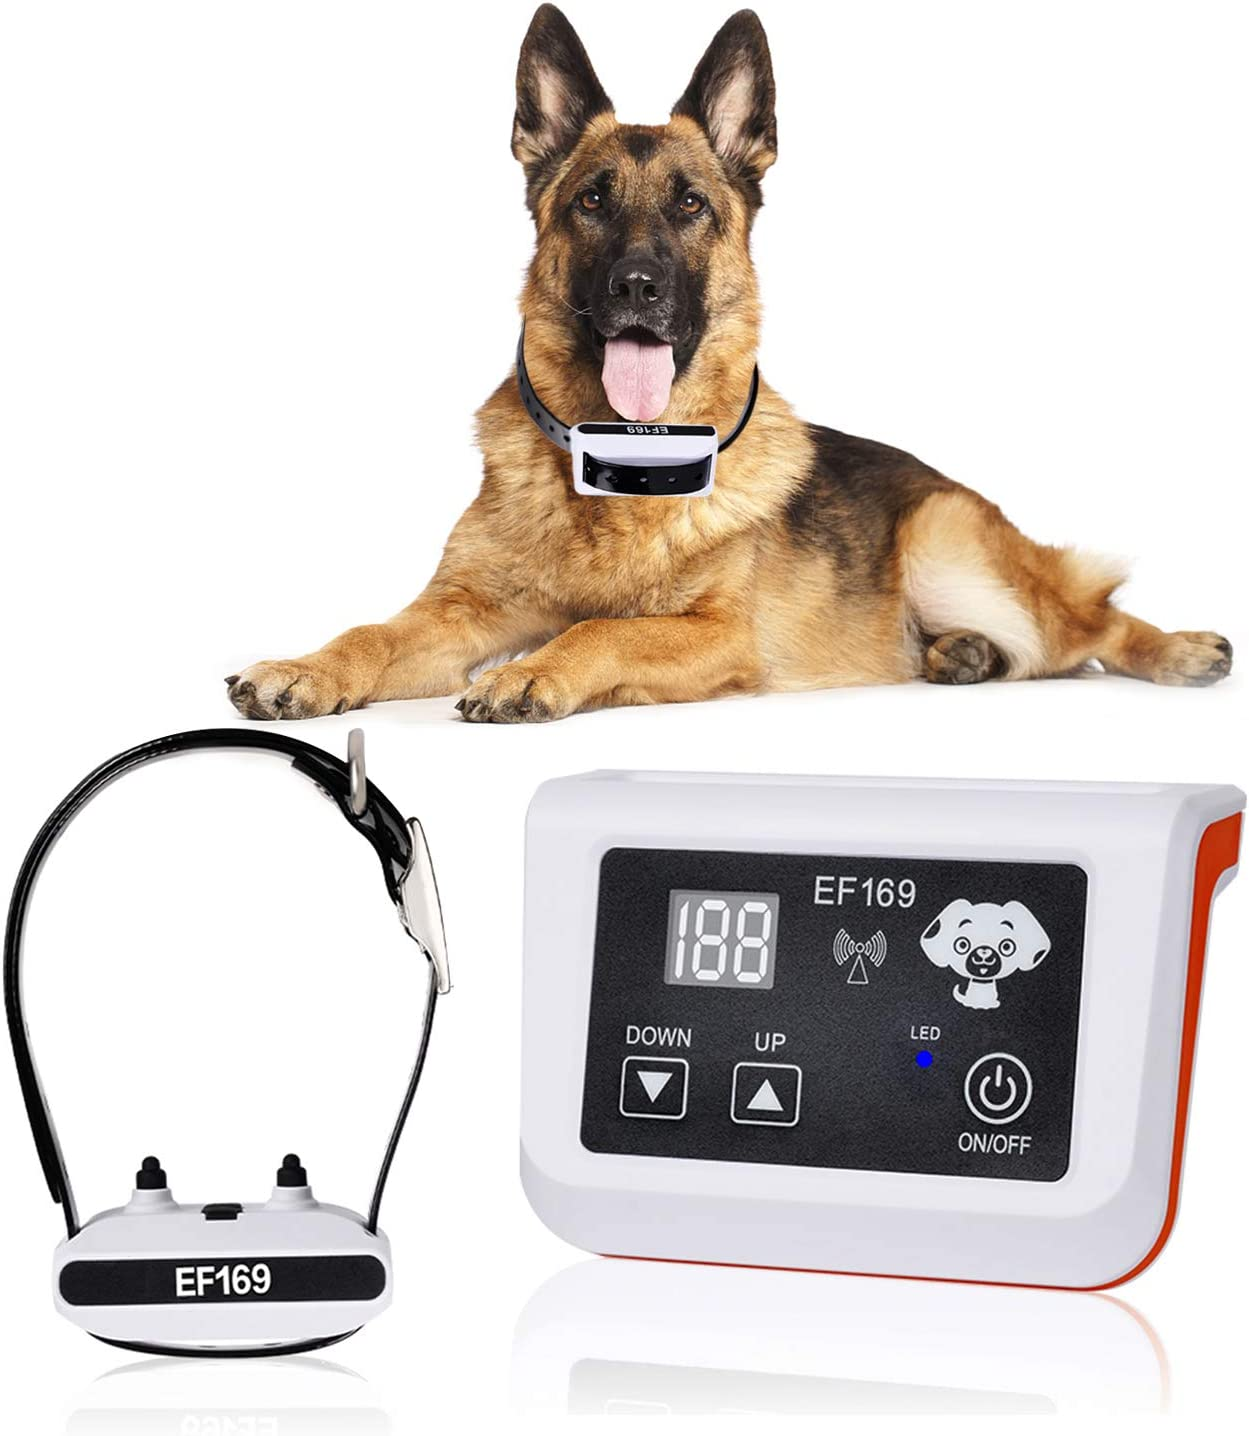 JUSTPET Wireless pet-fence